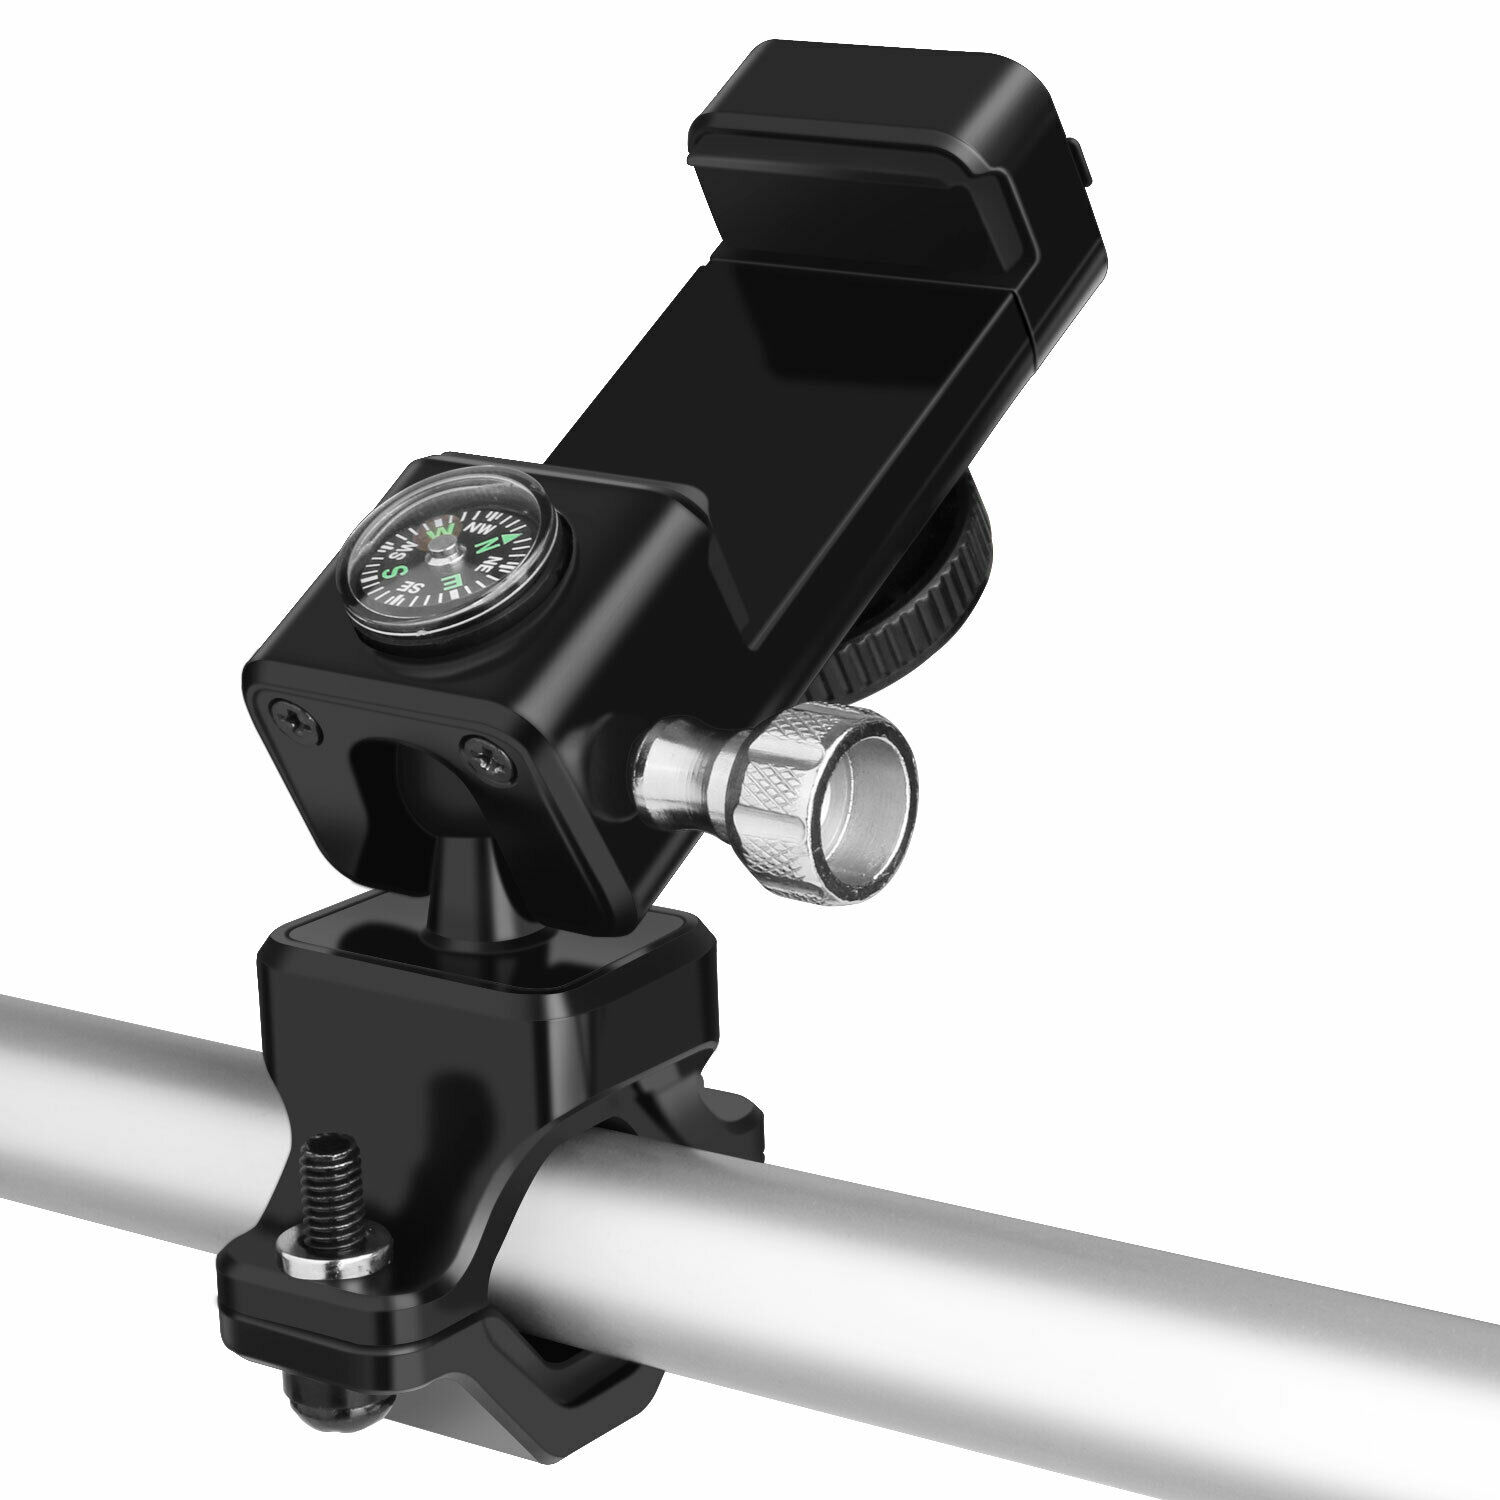 Bike Motorcycle MTB Handlebar Mount Cell Phone Holder GPS with LED Light Compass black